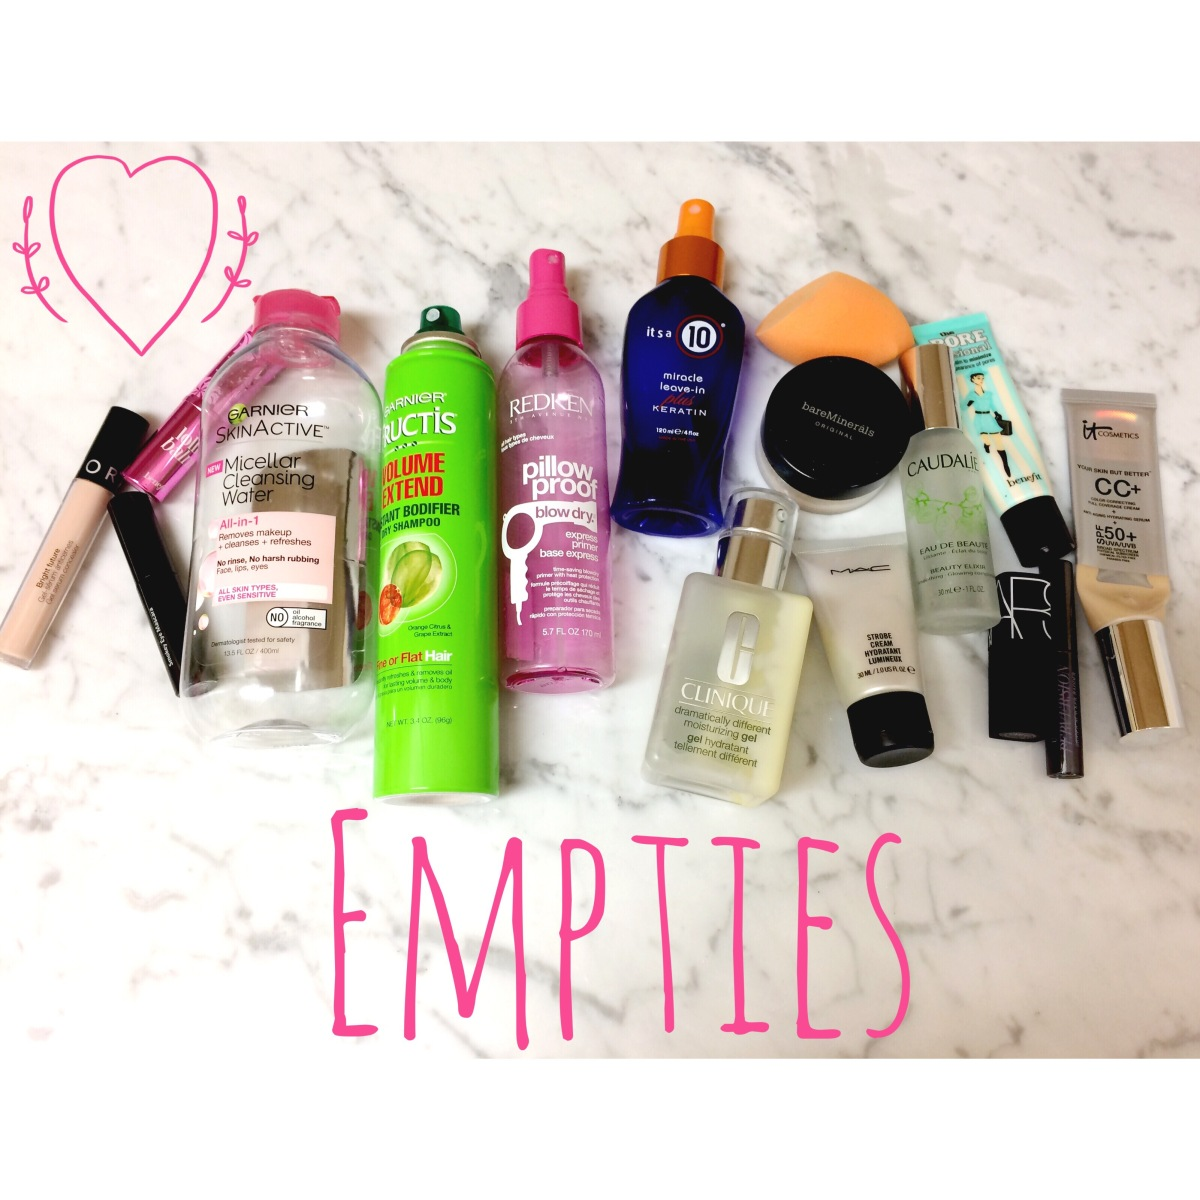 Quarterly Empties | NO BUY Update